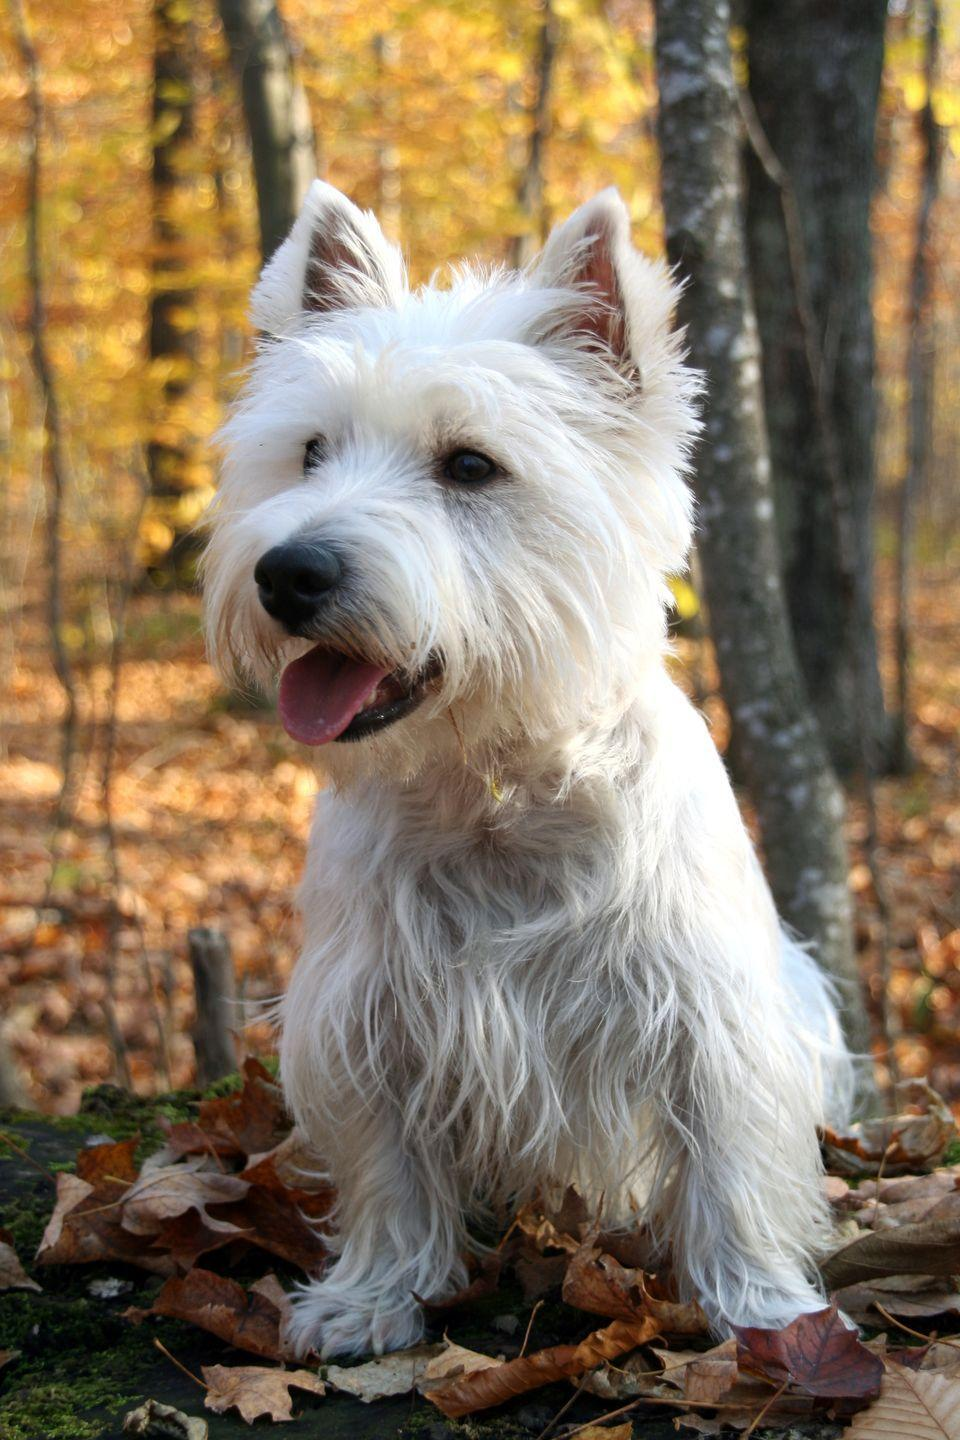 """<p>Just like other terriers, Westies possess the same curious and lively temperament — with the added bonus of minimal shedding. These hardy dogs have a <a href=""""https://www.goodhousekeeping.com/life/pets/g4531/cutest-dog-breeds/"""" rel=""""nofollow noopener"""" target=""""_blank"""" data-ylk=""""slk:cheerful attitude"""" class=""""link rapid-noclick-resp"""">cheerful attitude</a> that will keep you giggling with their playful antics. Their portable size and friendly disposition make them some of the most popular terriers. </p>"""